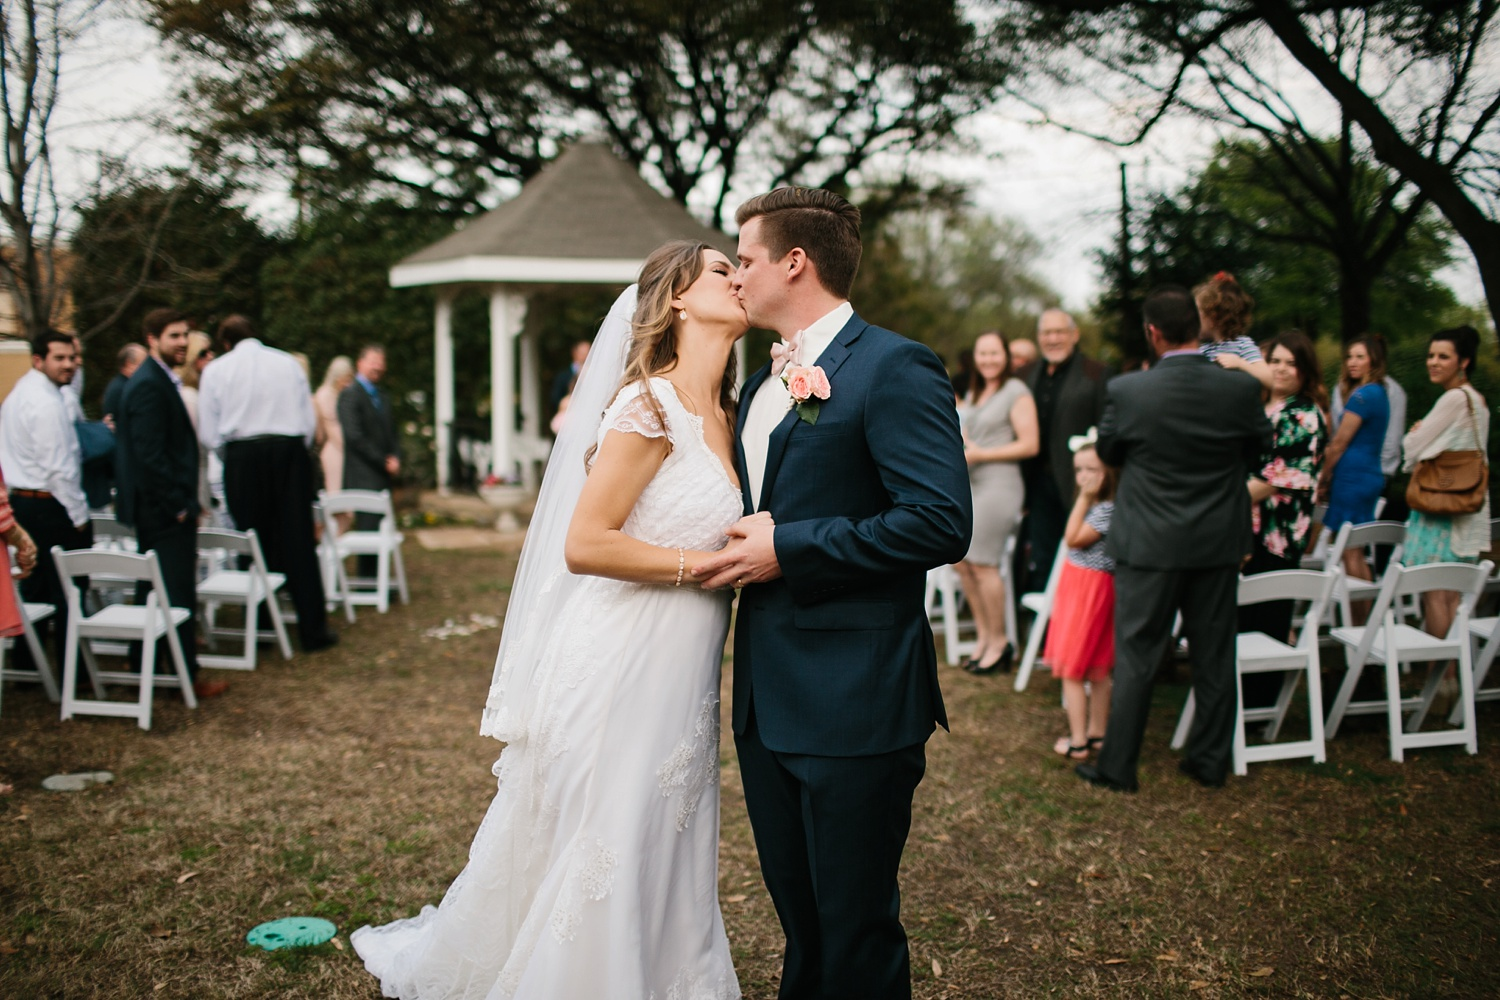 Amber + Daniel an intimate, simple, spring ceremony at Heard Craig Center and reception at Gather in McKinney, Texas by North Texas Wedding Photographer Rachel Meagan Photography 071